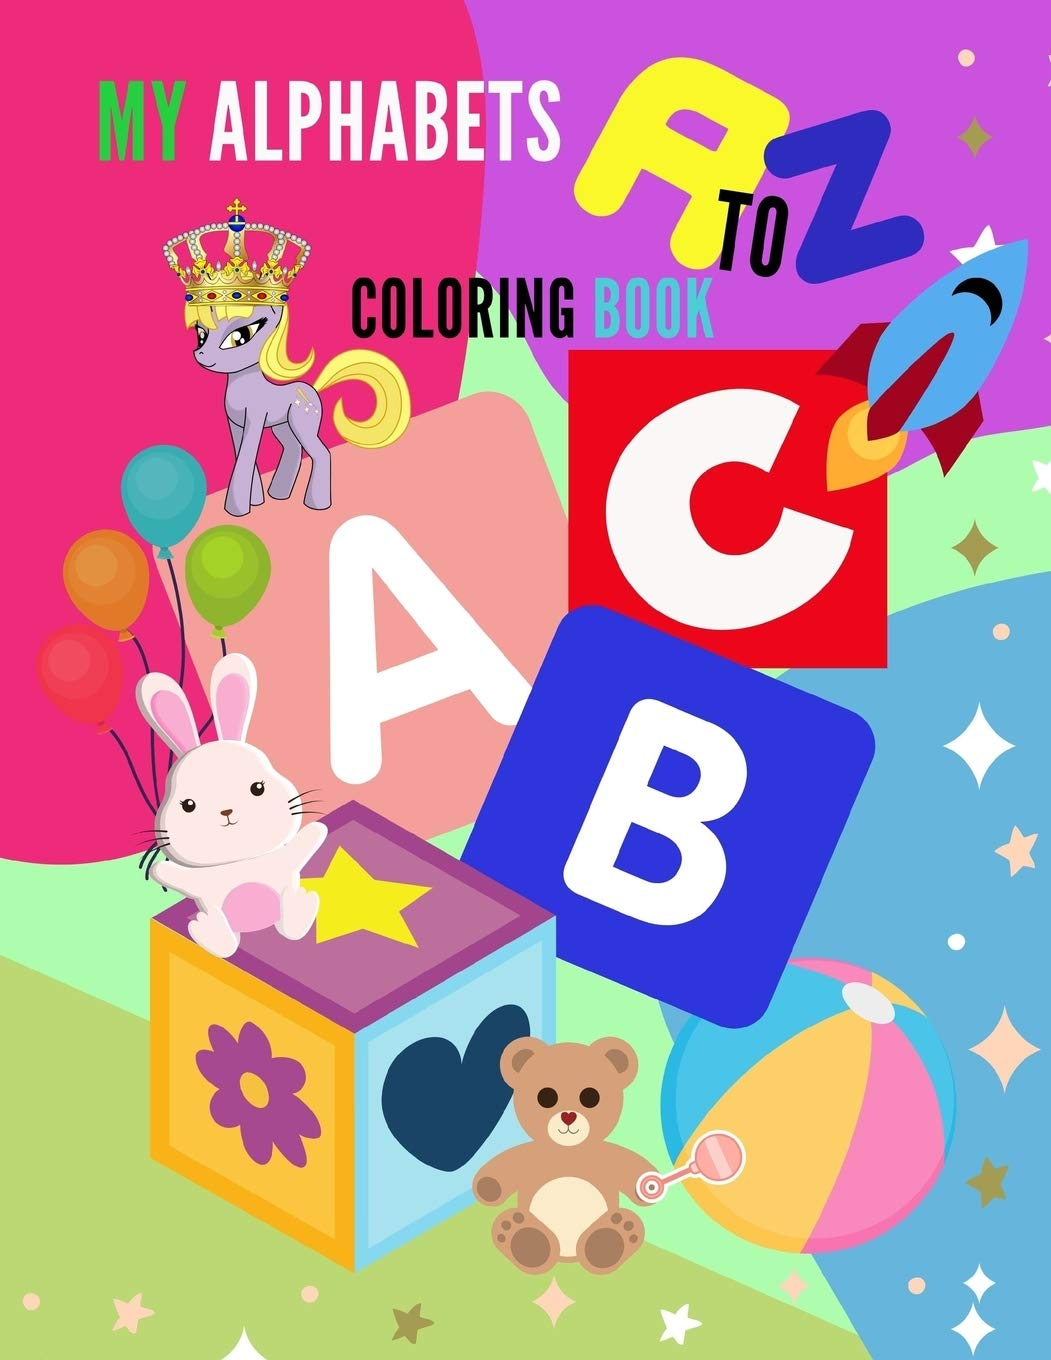 My Alphabets A Z Coloring Book High Quality Black White Alphabet A Z Coloring Book For Kids Ages 2 4 Toddler Abc Coloring Book Morgan Janelle 9781080695843 Amazon Com Books